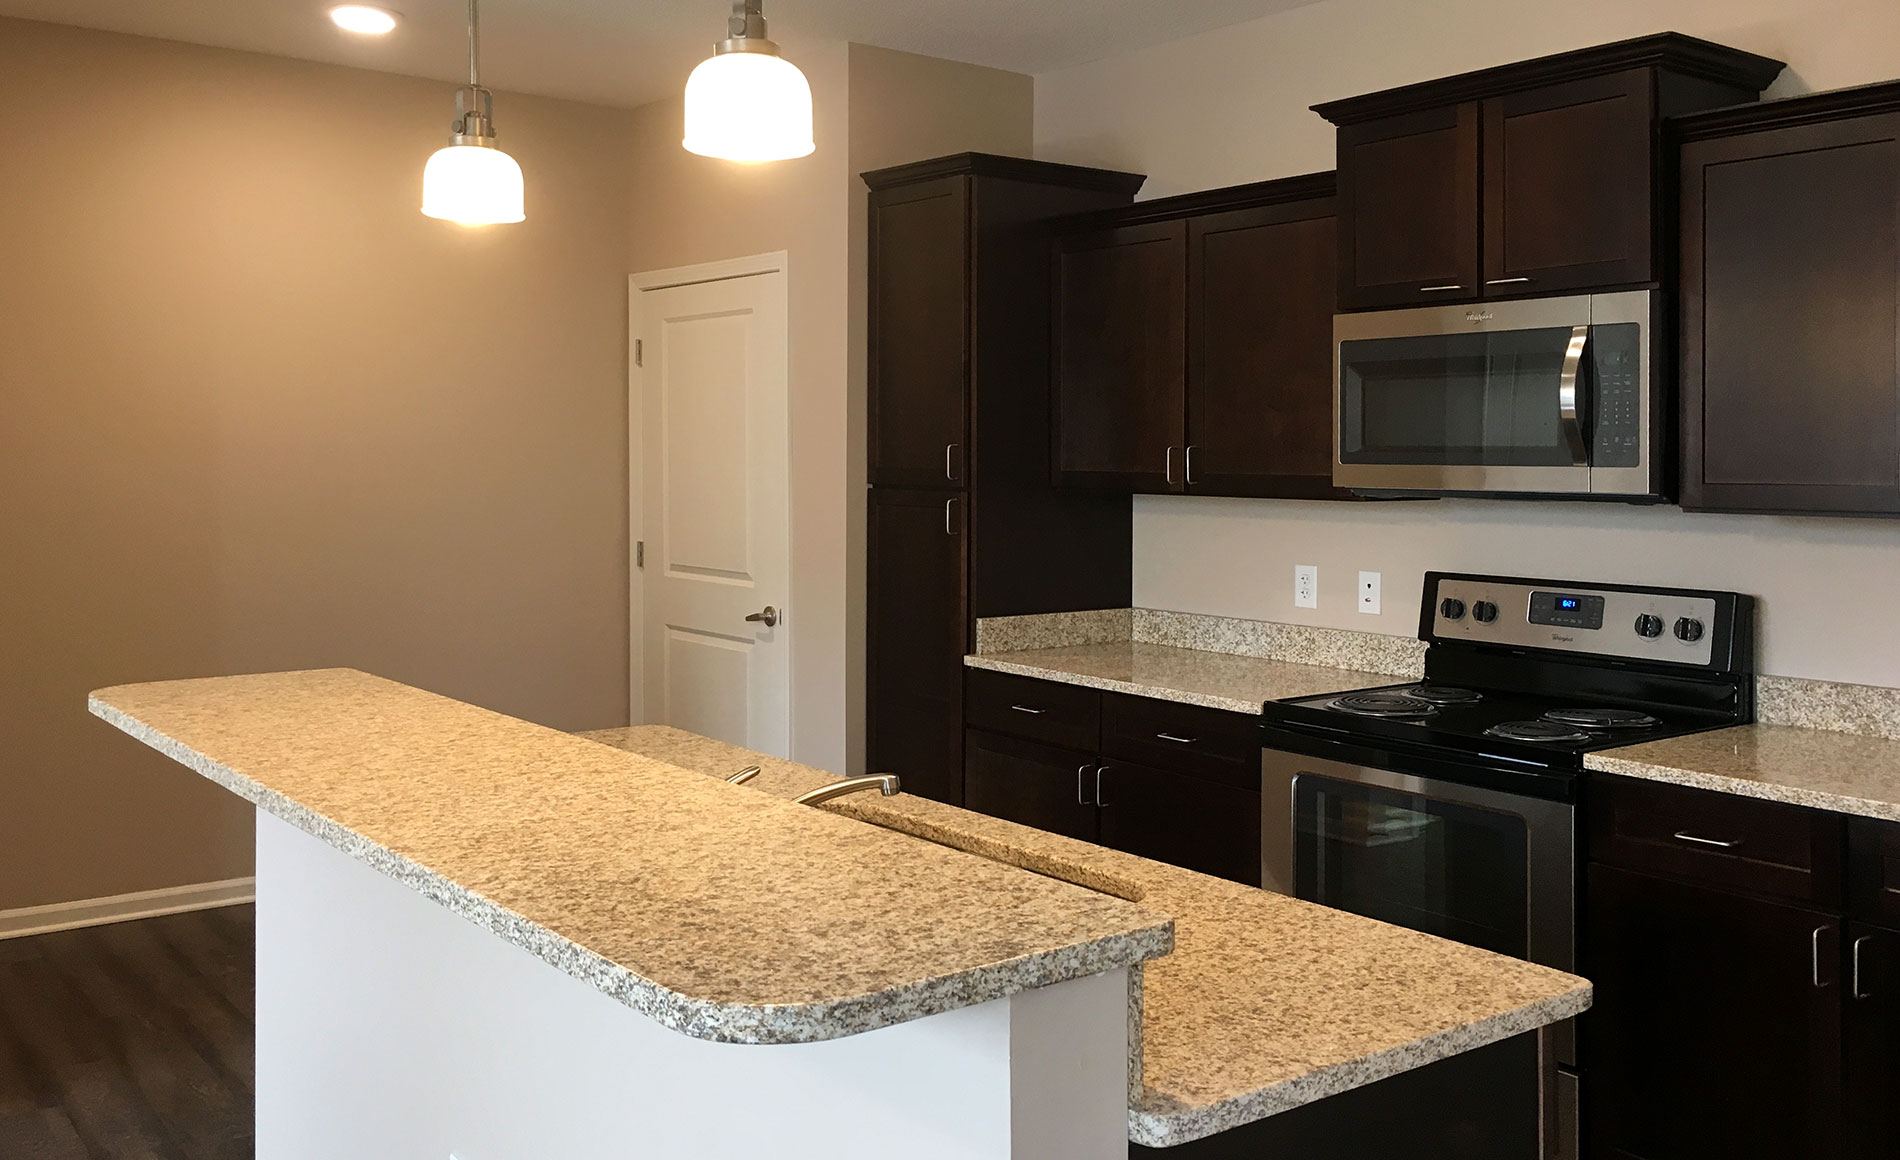 Lee S Summit Pet Friendly Apartments Near Me For Rent In Lee S Summit School District Luxury Two Bedroom One Bath Lees Summit Apartment In Lee S Summit Mo With Fitness Center 2 Salt Water